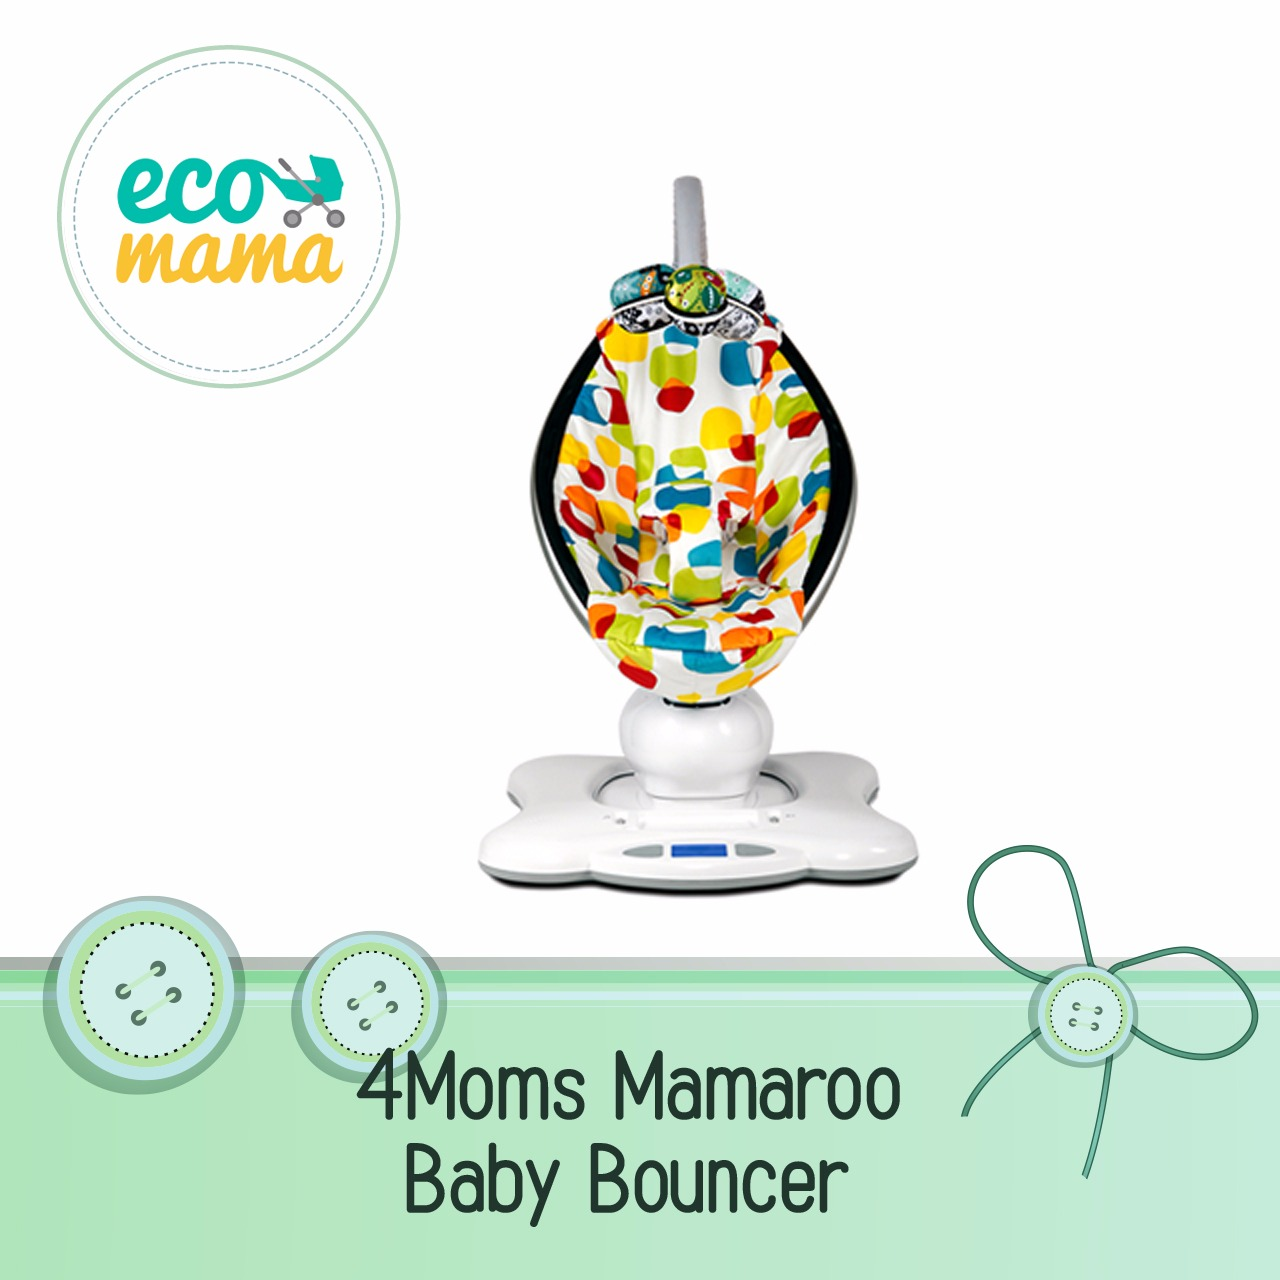 4Moms Infant MamaRoo Baby Bouncer